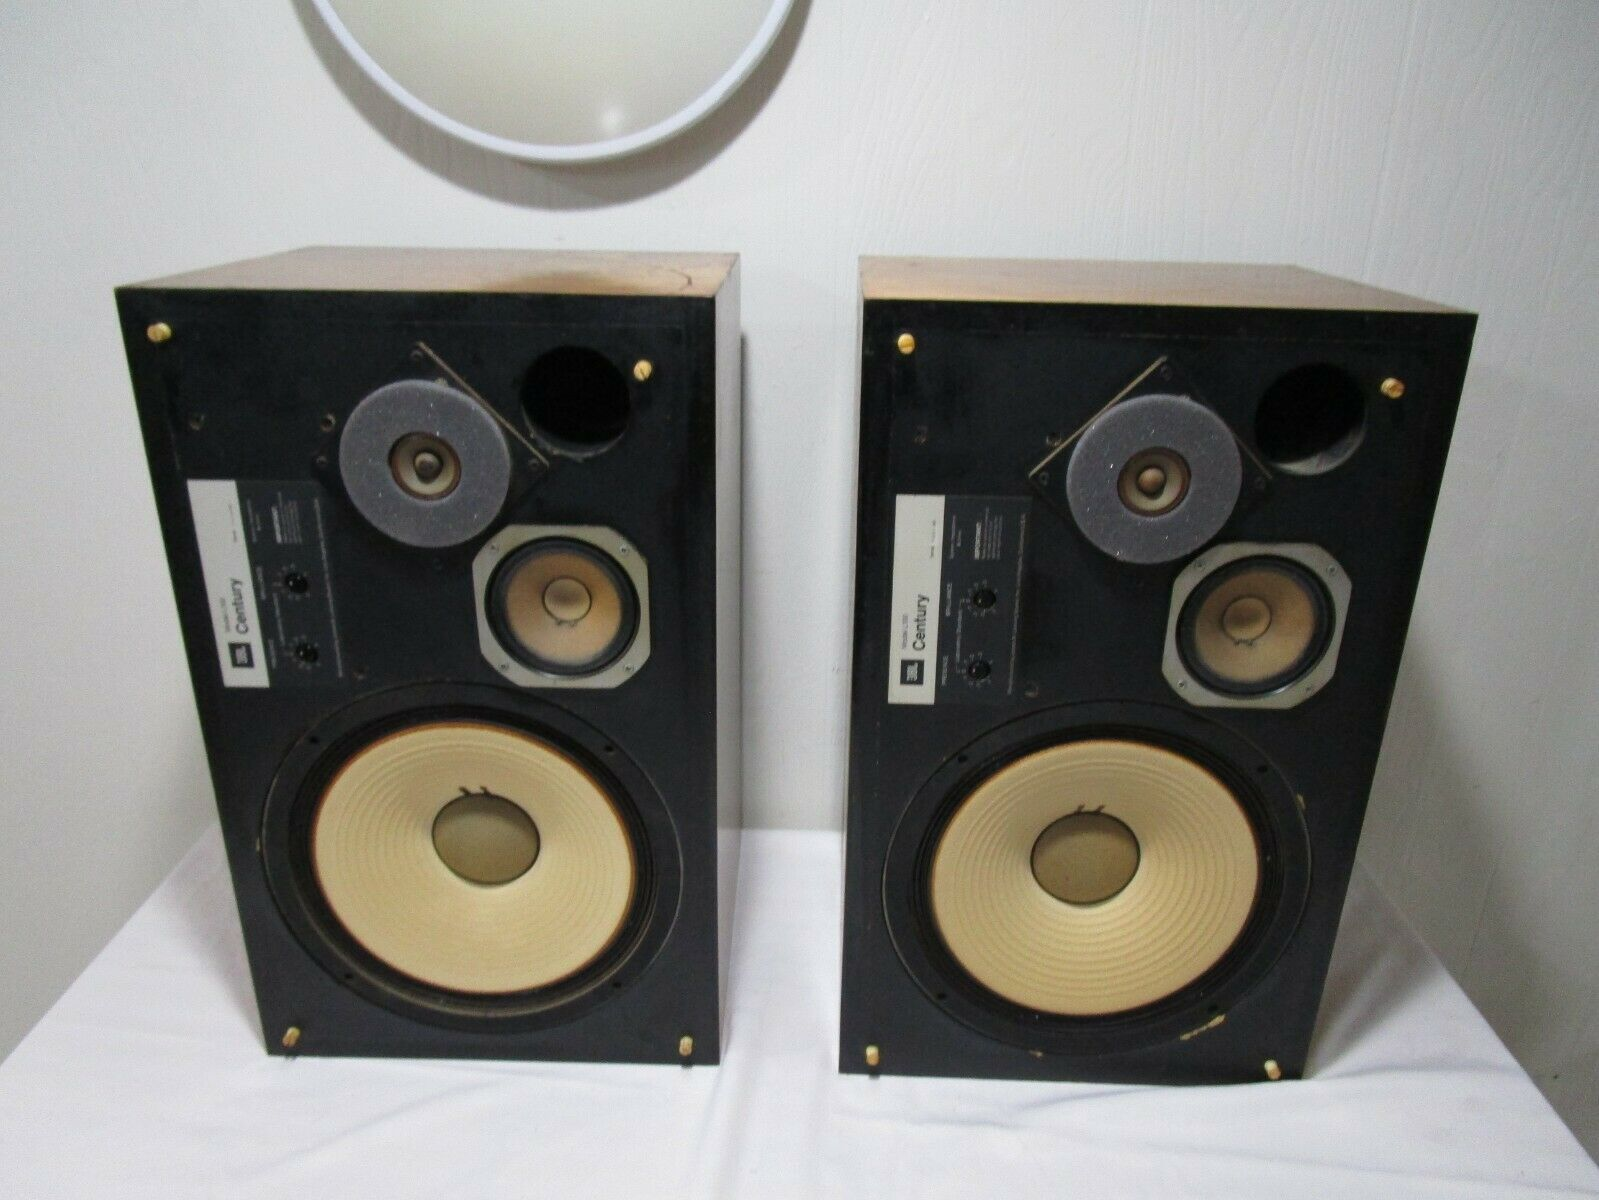 s l1600 - Vintage Pair of JBL L100 Century Speakers w/ Grille Frames #1 ---------